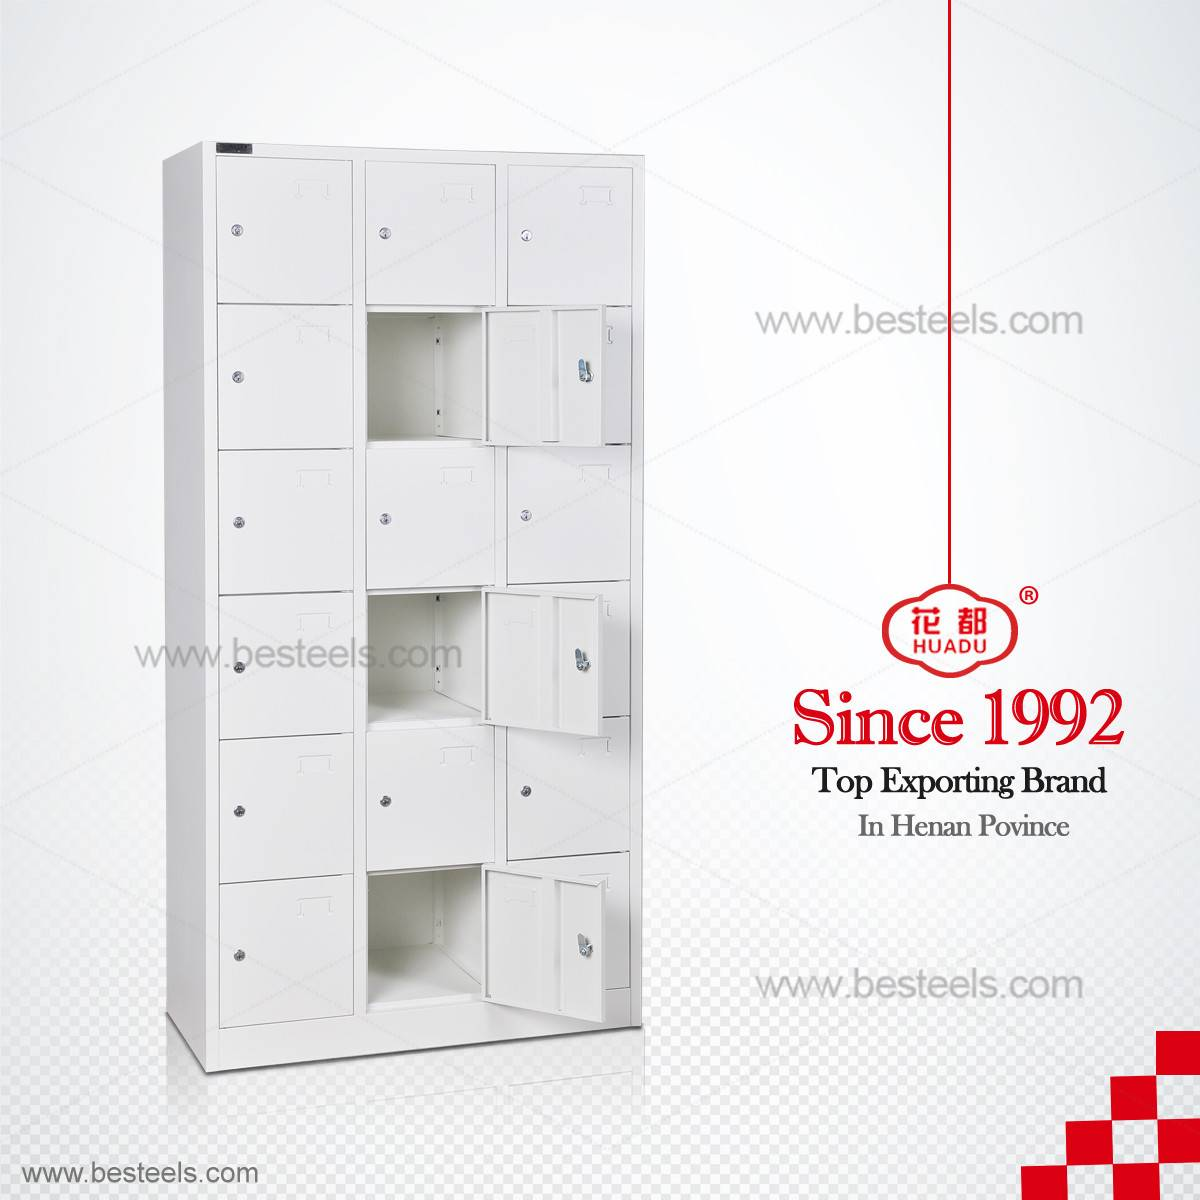 HDG-18 STEEL ALMIRAH/METAL LOCKER